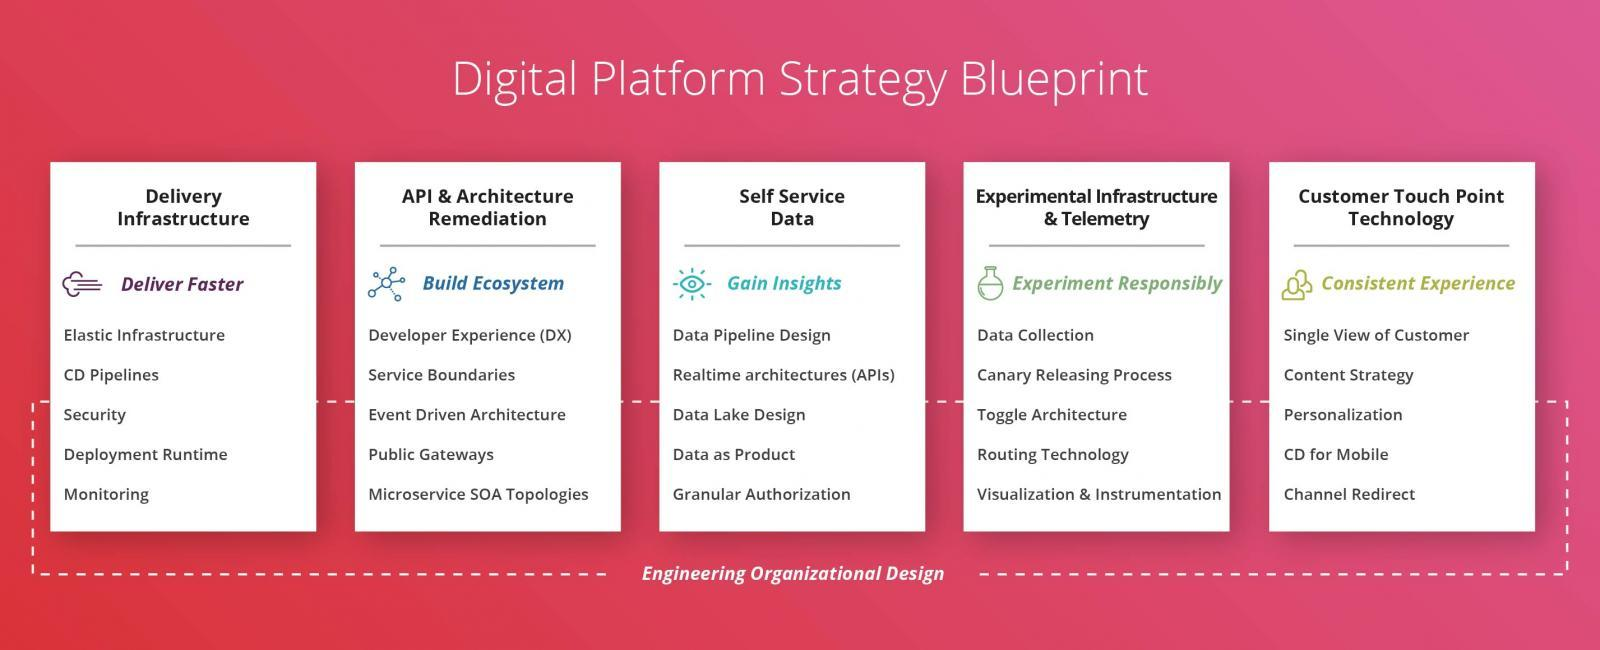 Digital Platform Strategy - a blueprint